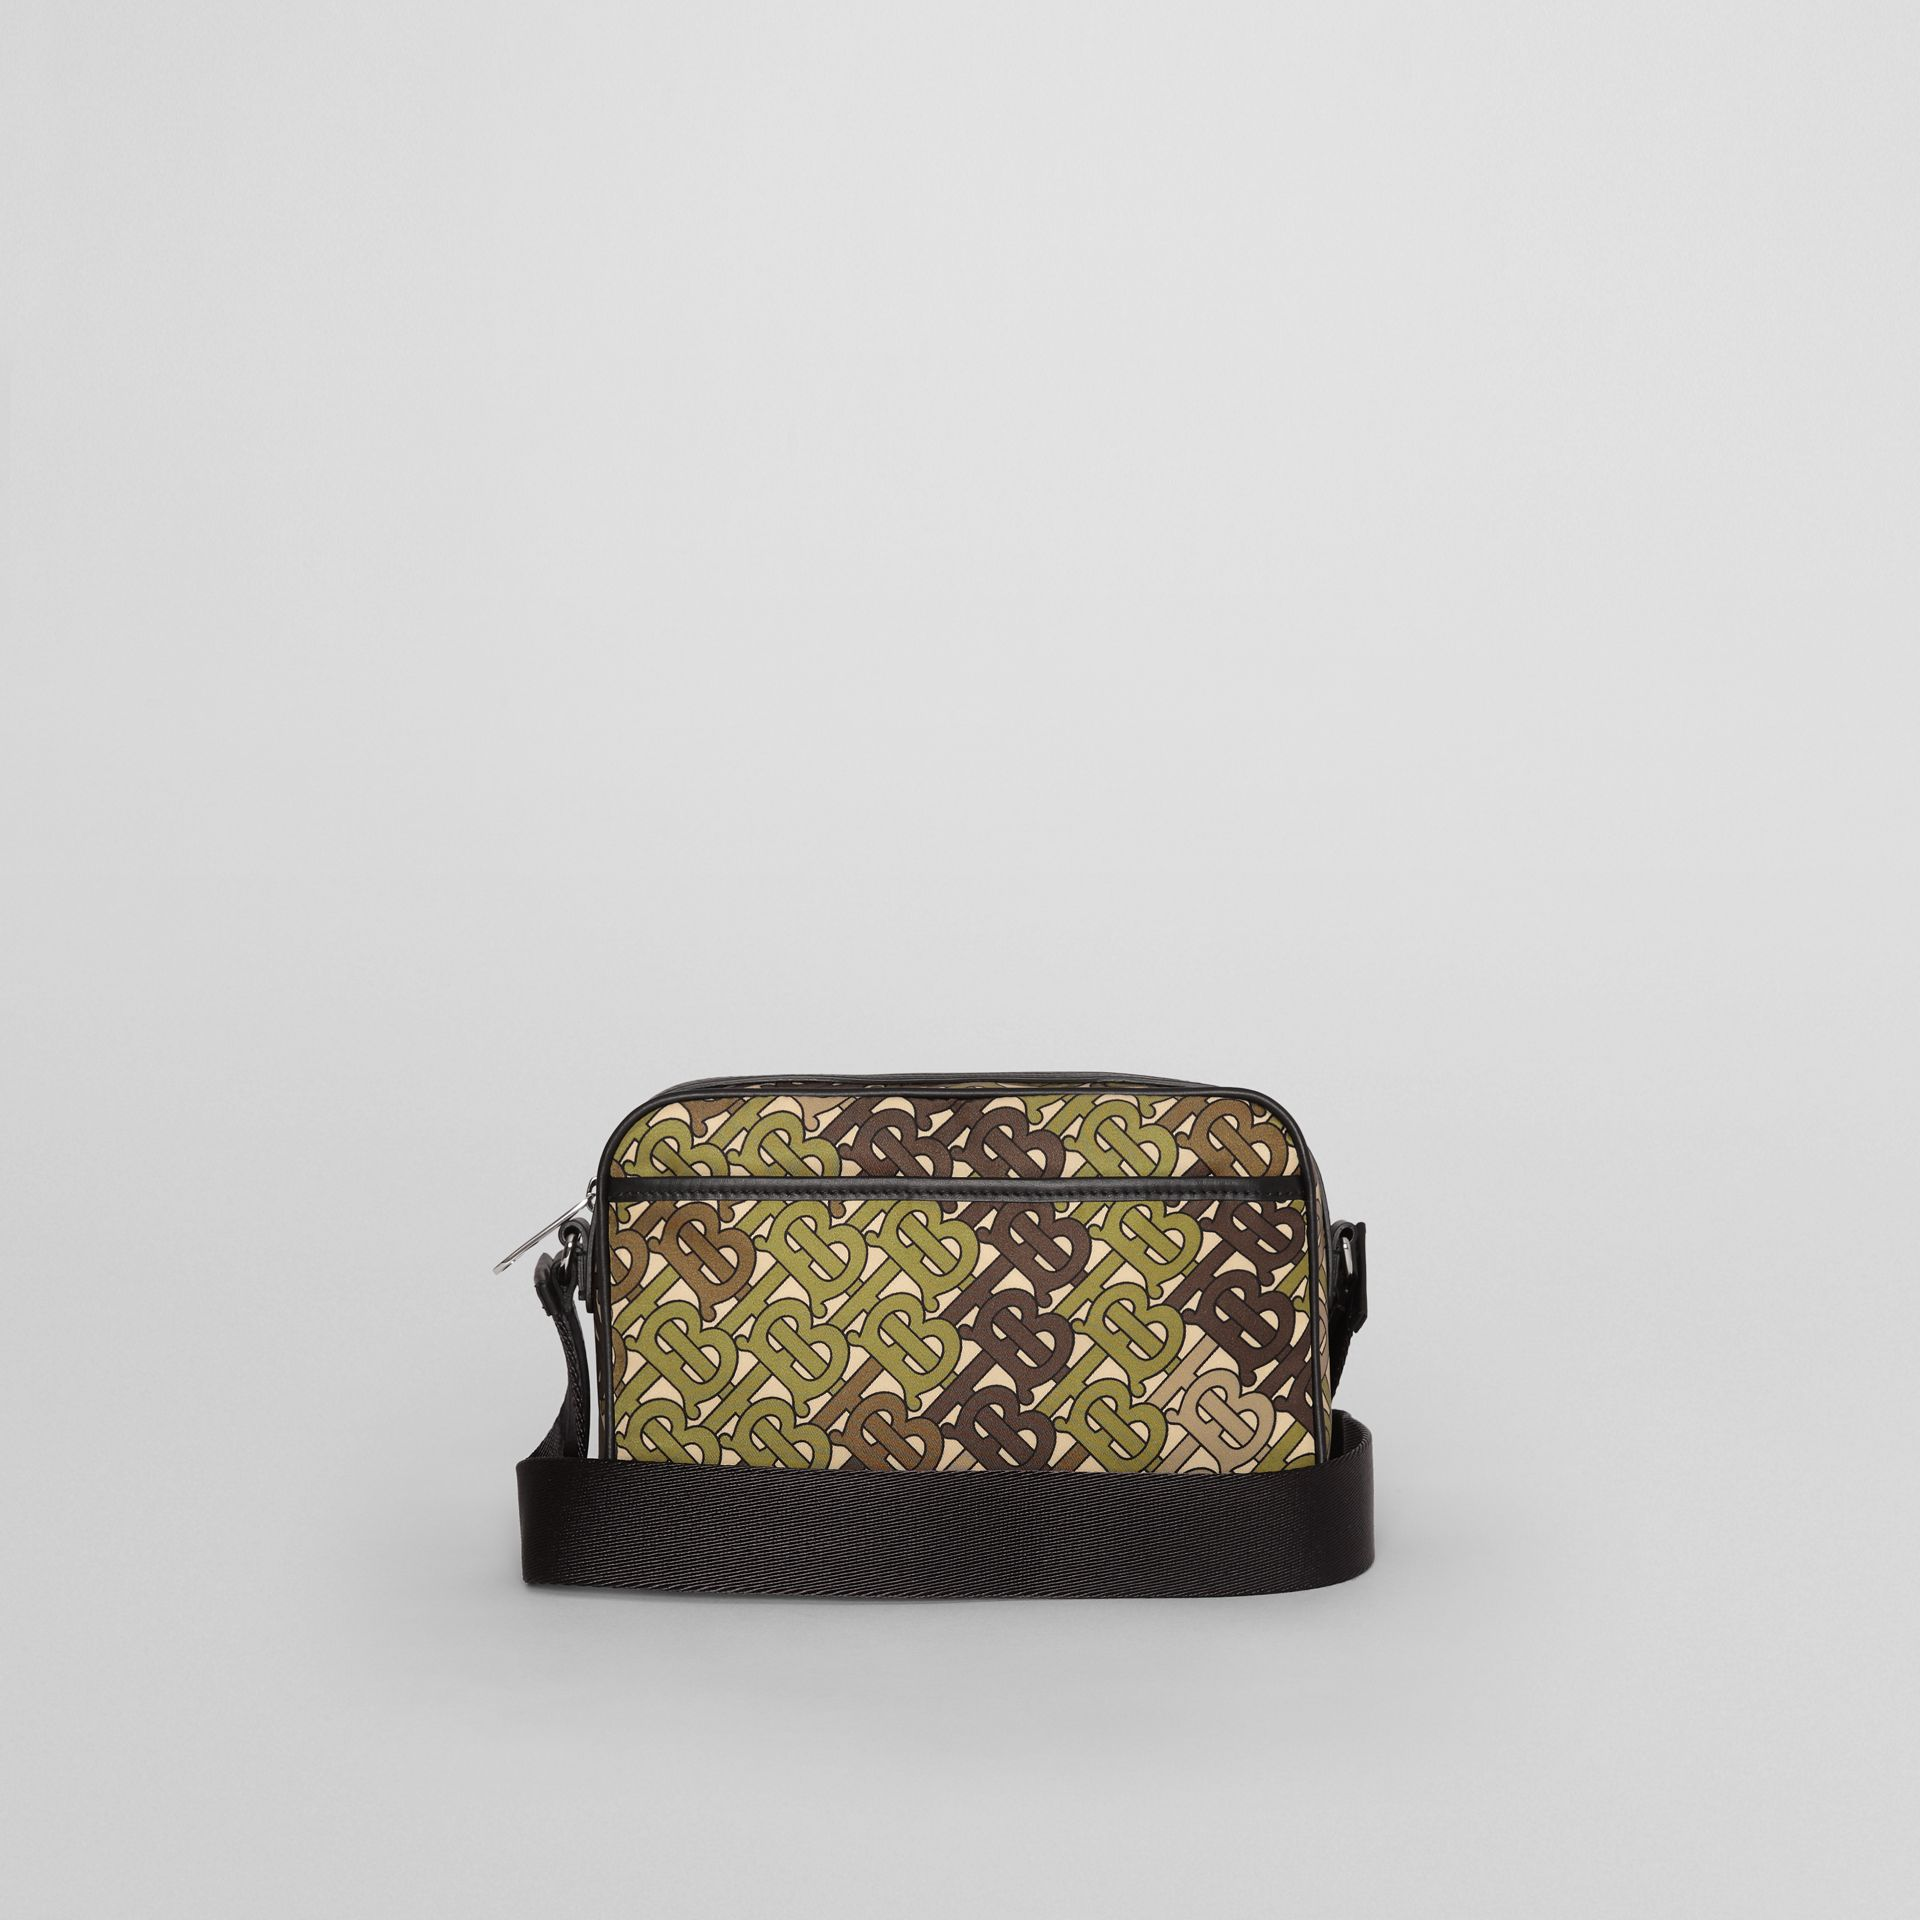 Monogram Print and Leather Crossbody Bag in Khaki Green - Men | Burberry - gallery image 7